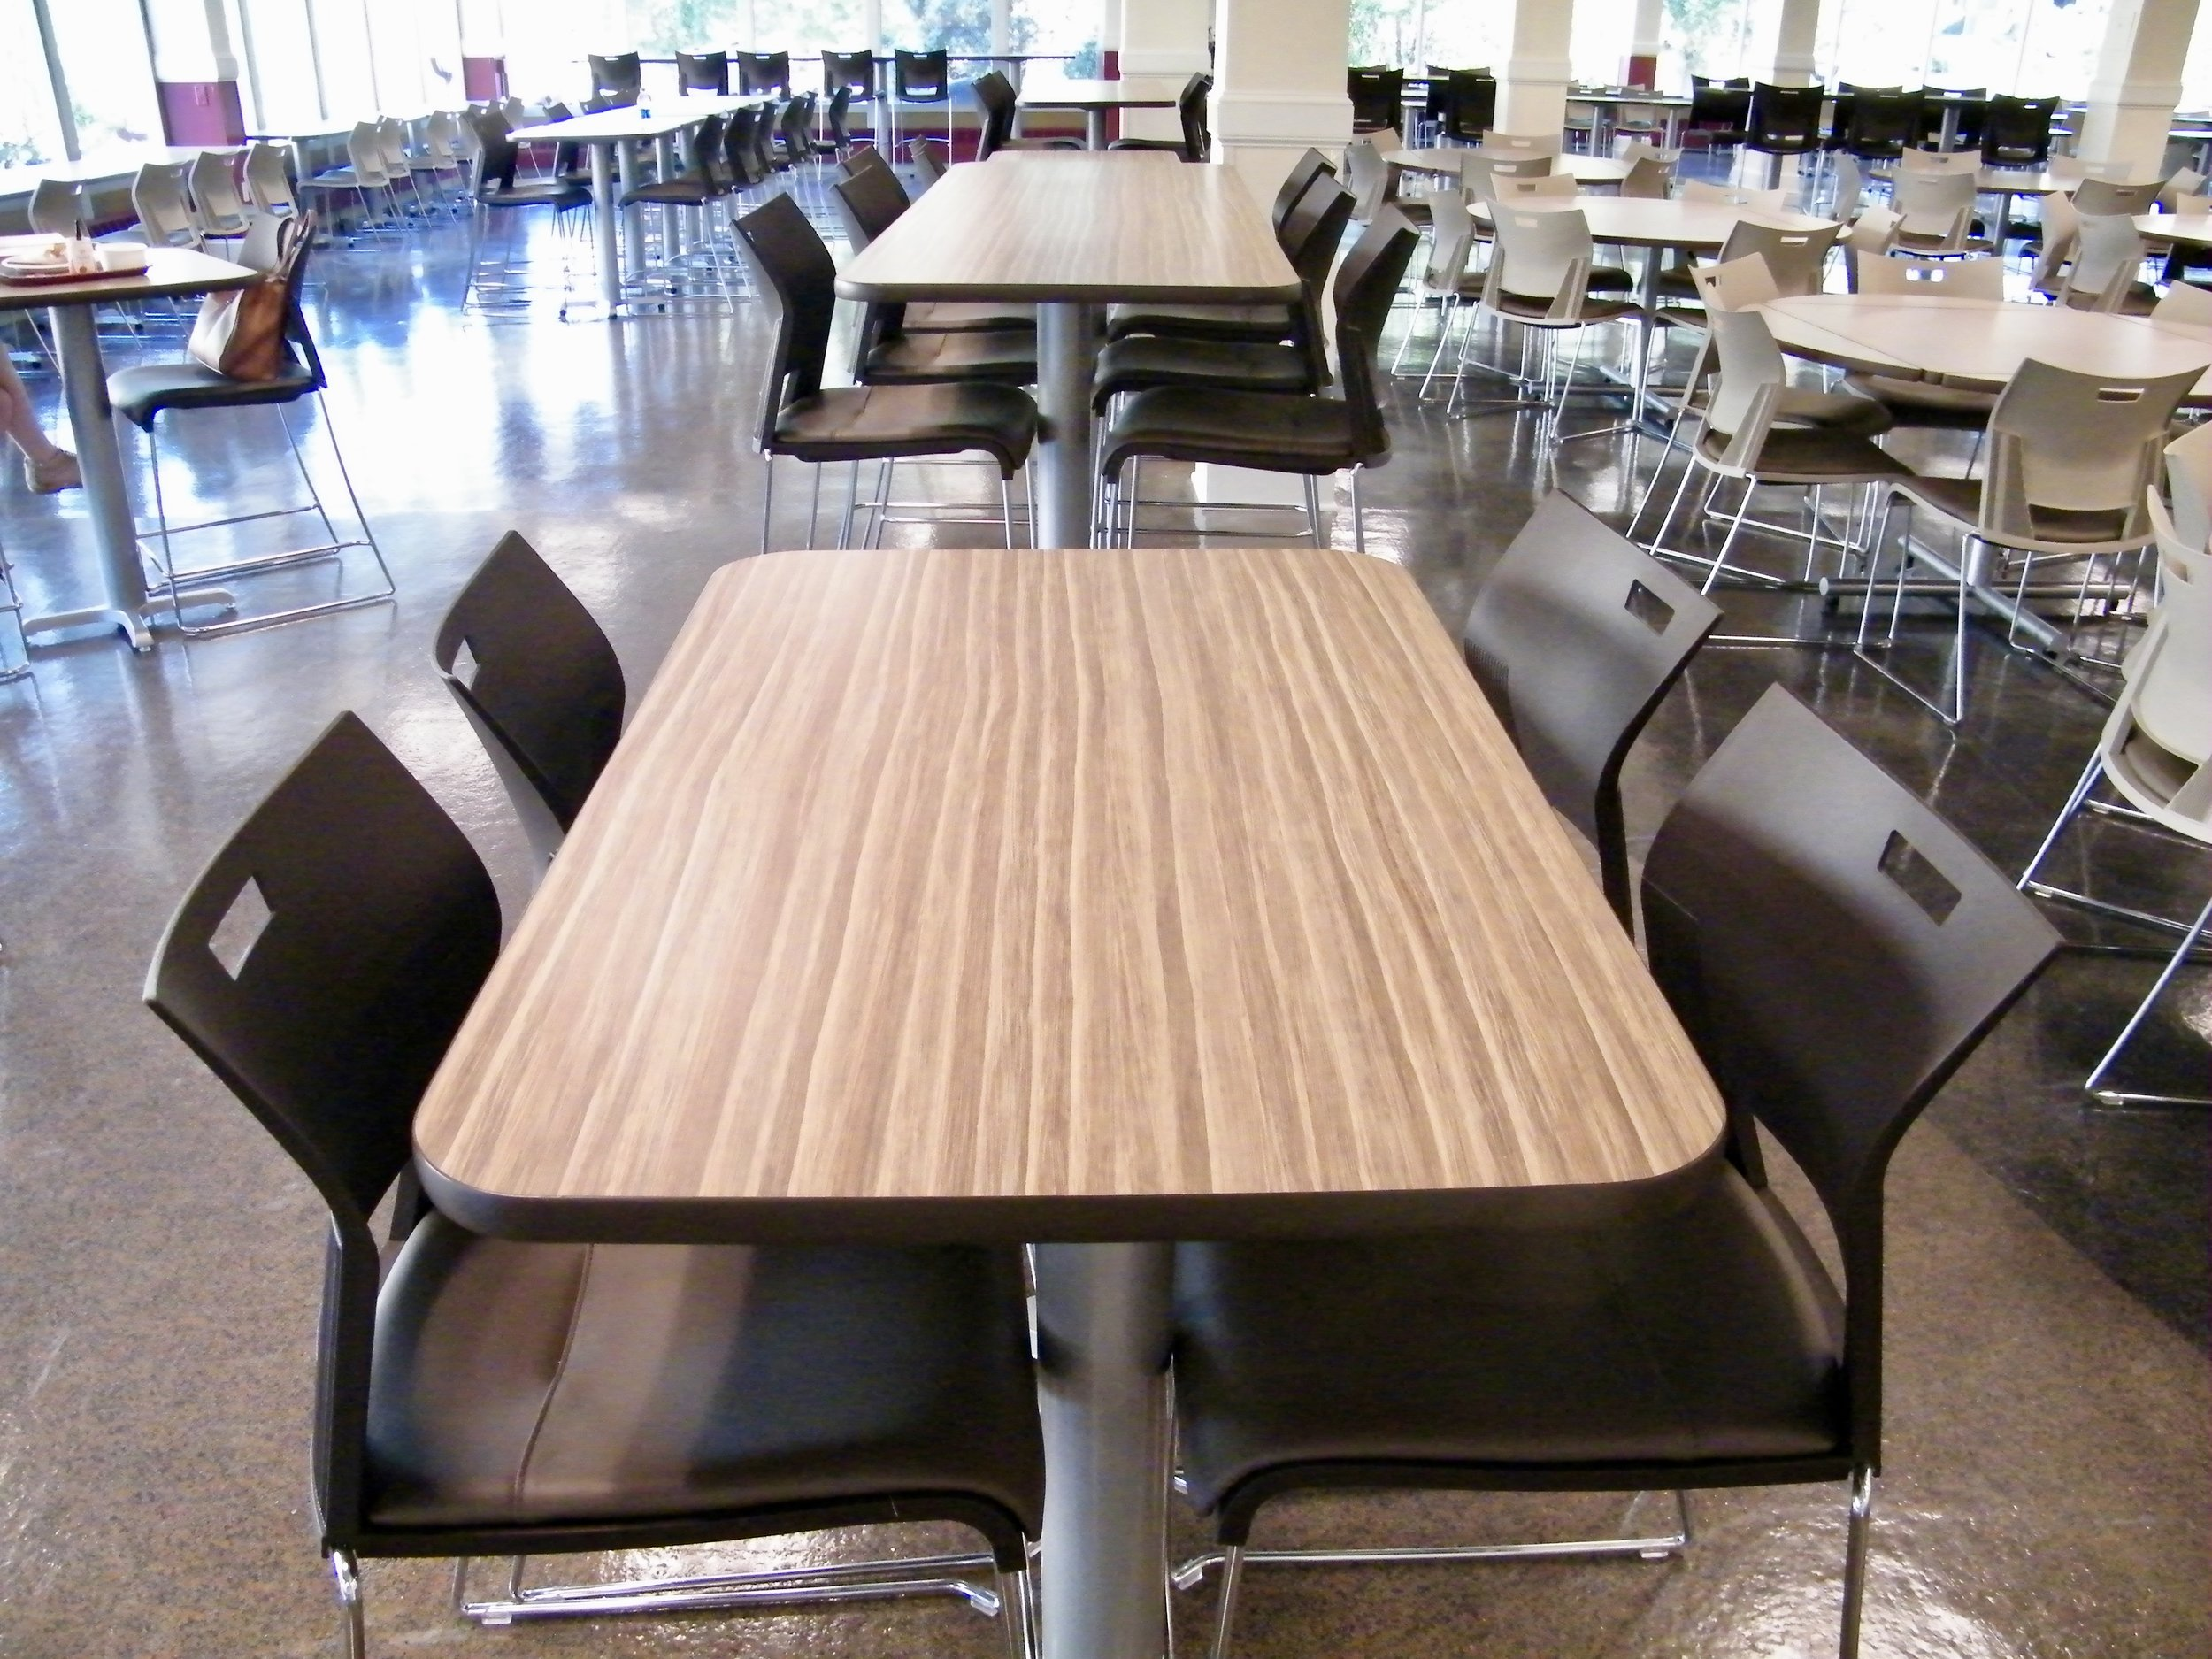 counter height duet chairs with laminate top pvce edge tables in university dining setting